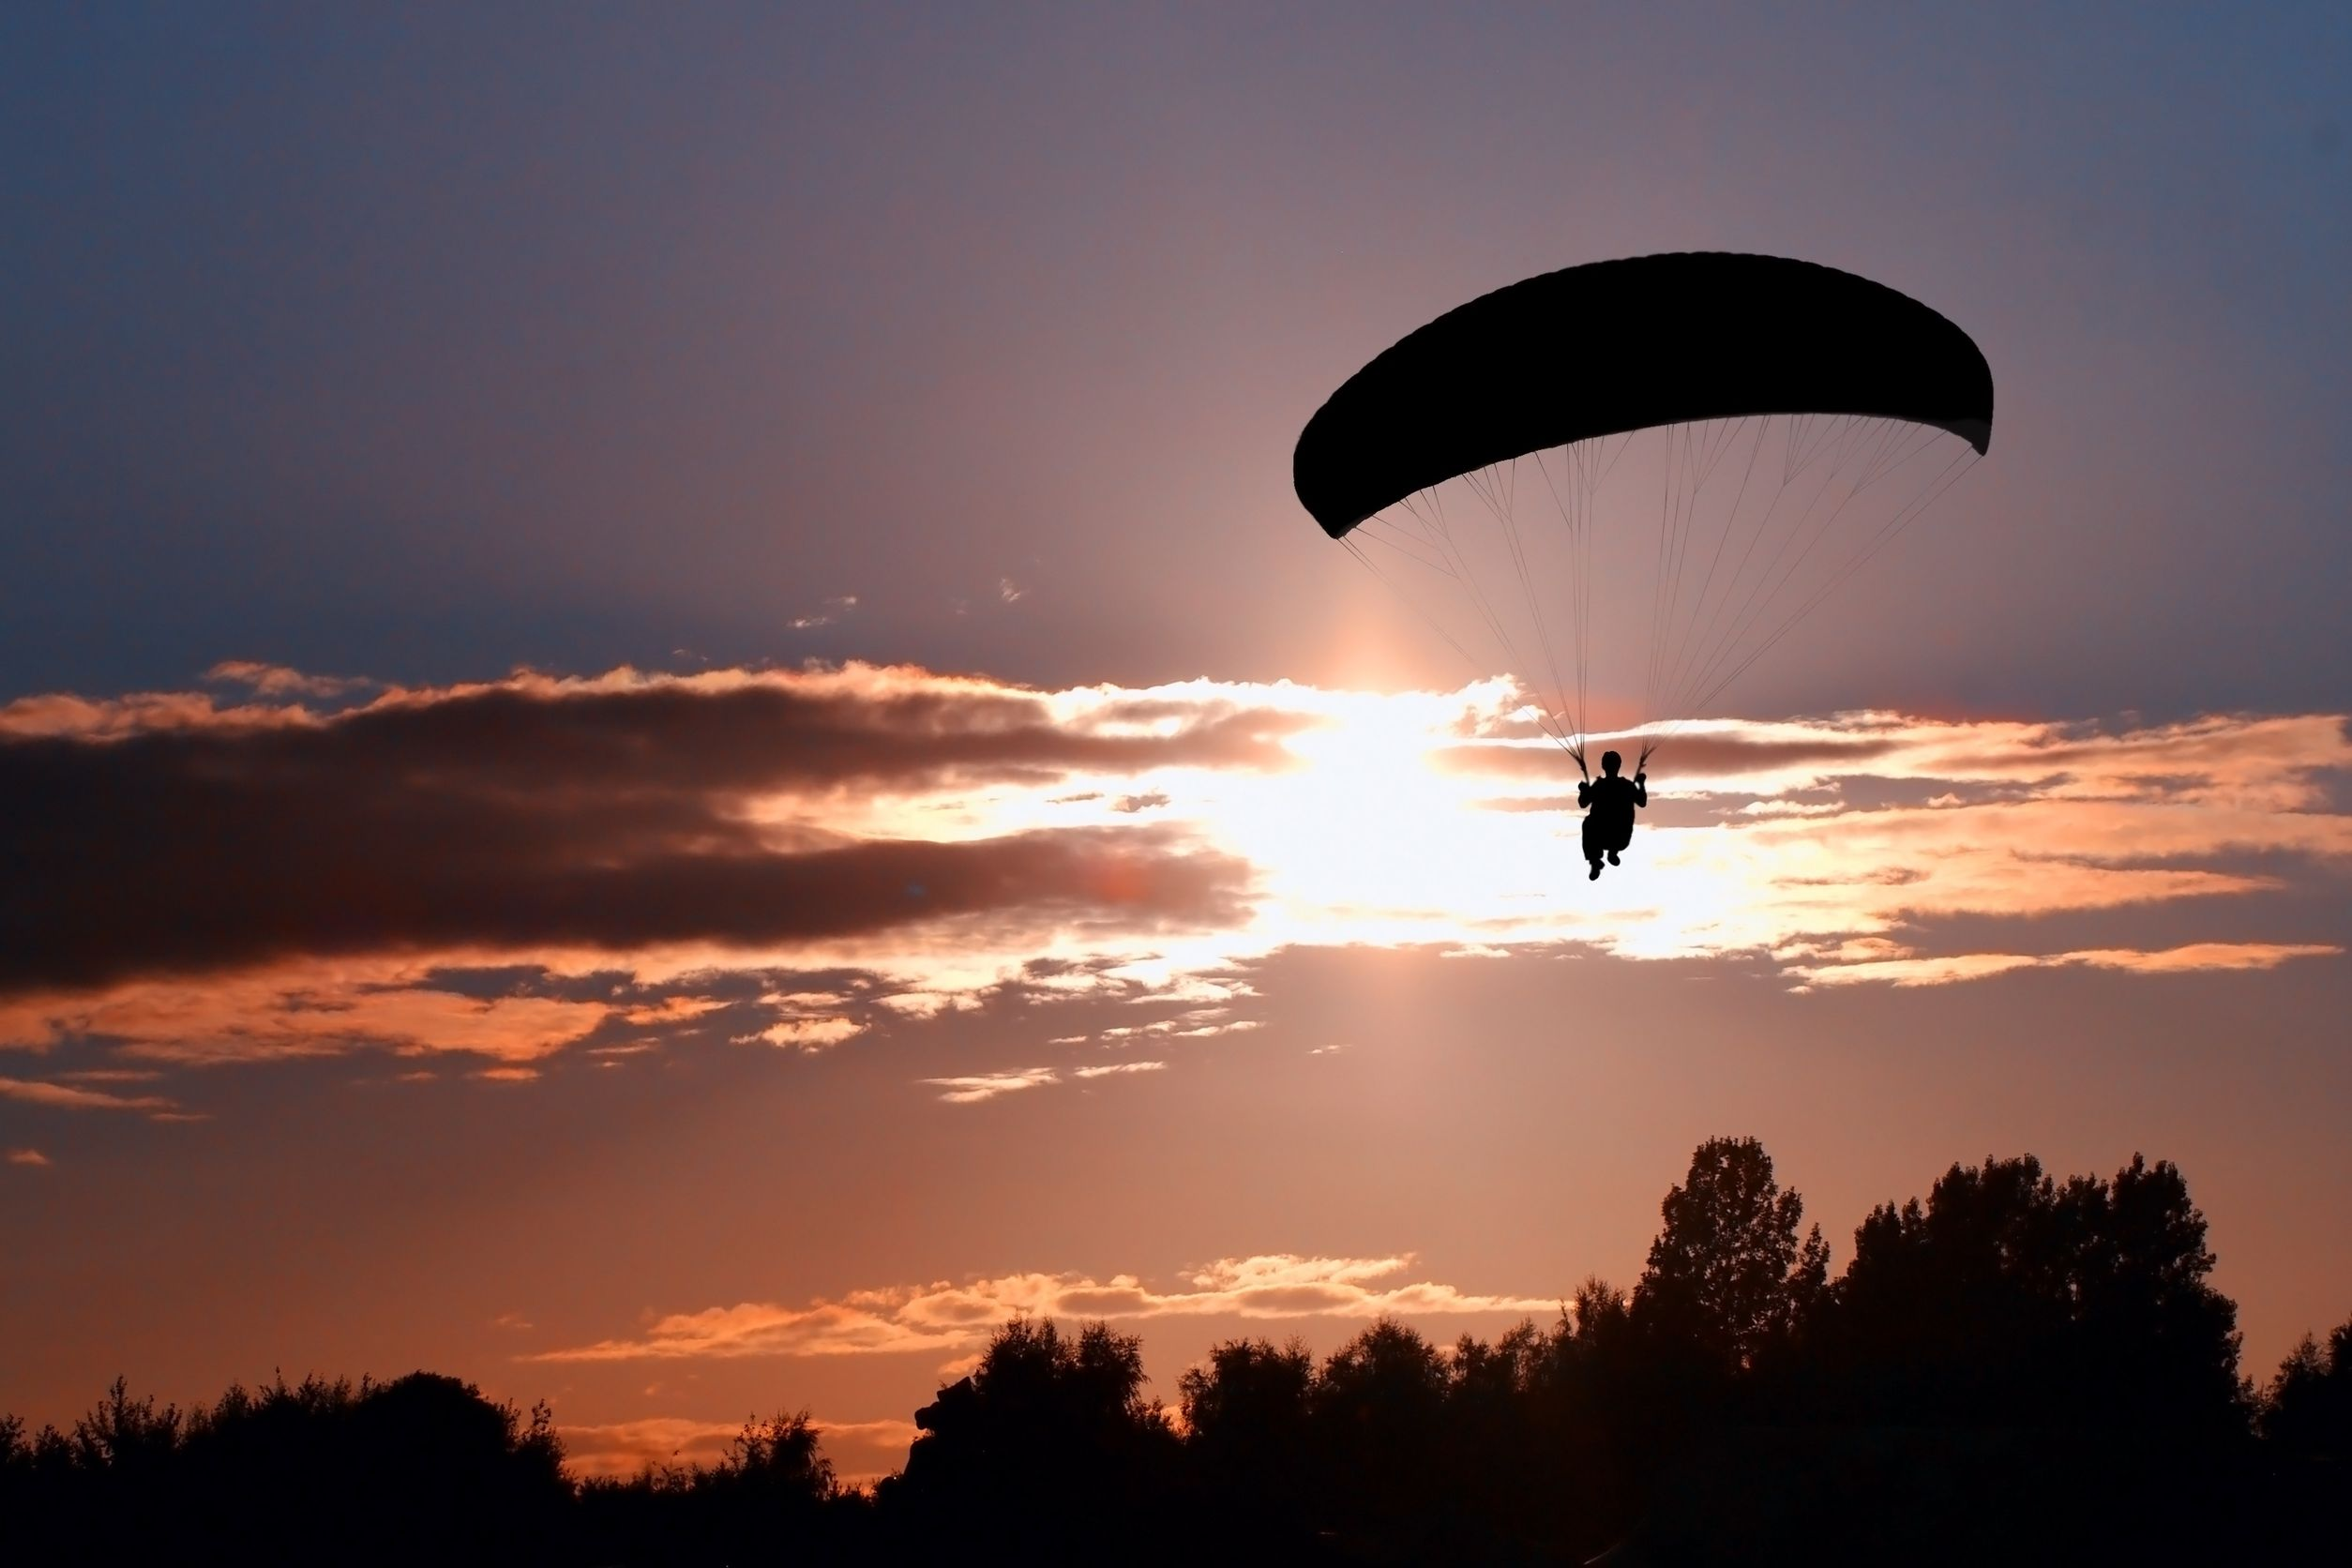 new zealand paraglider sunset 123rf